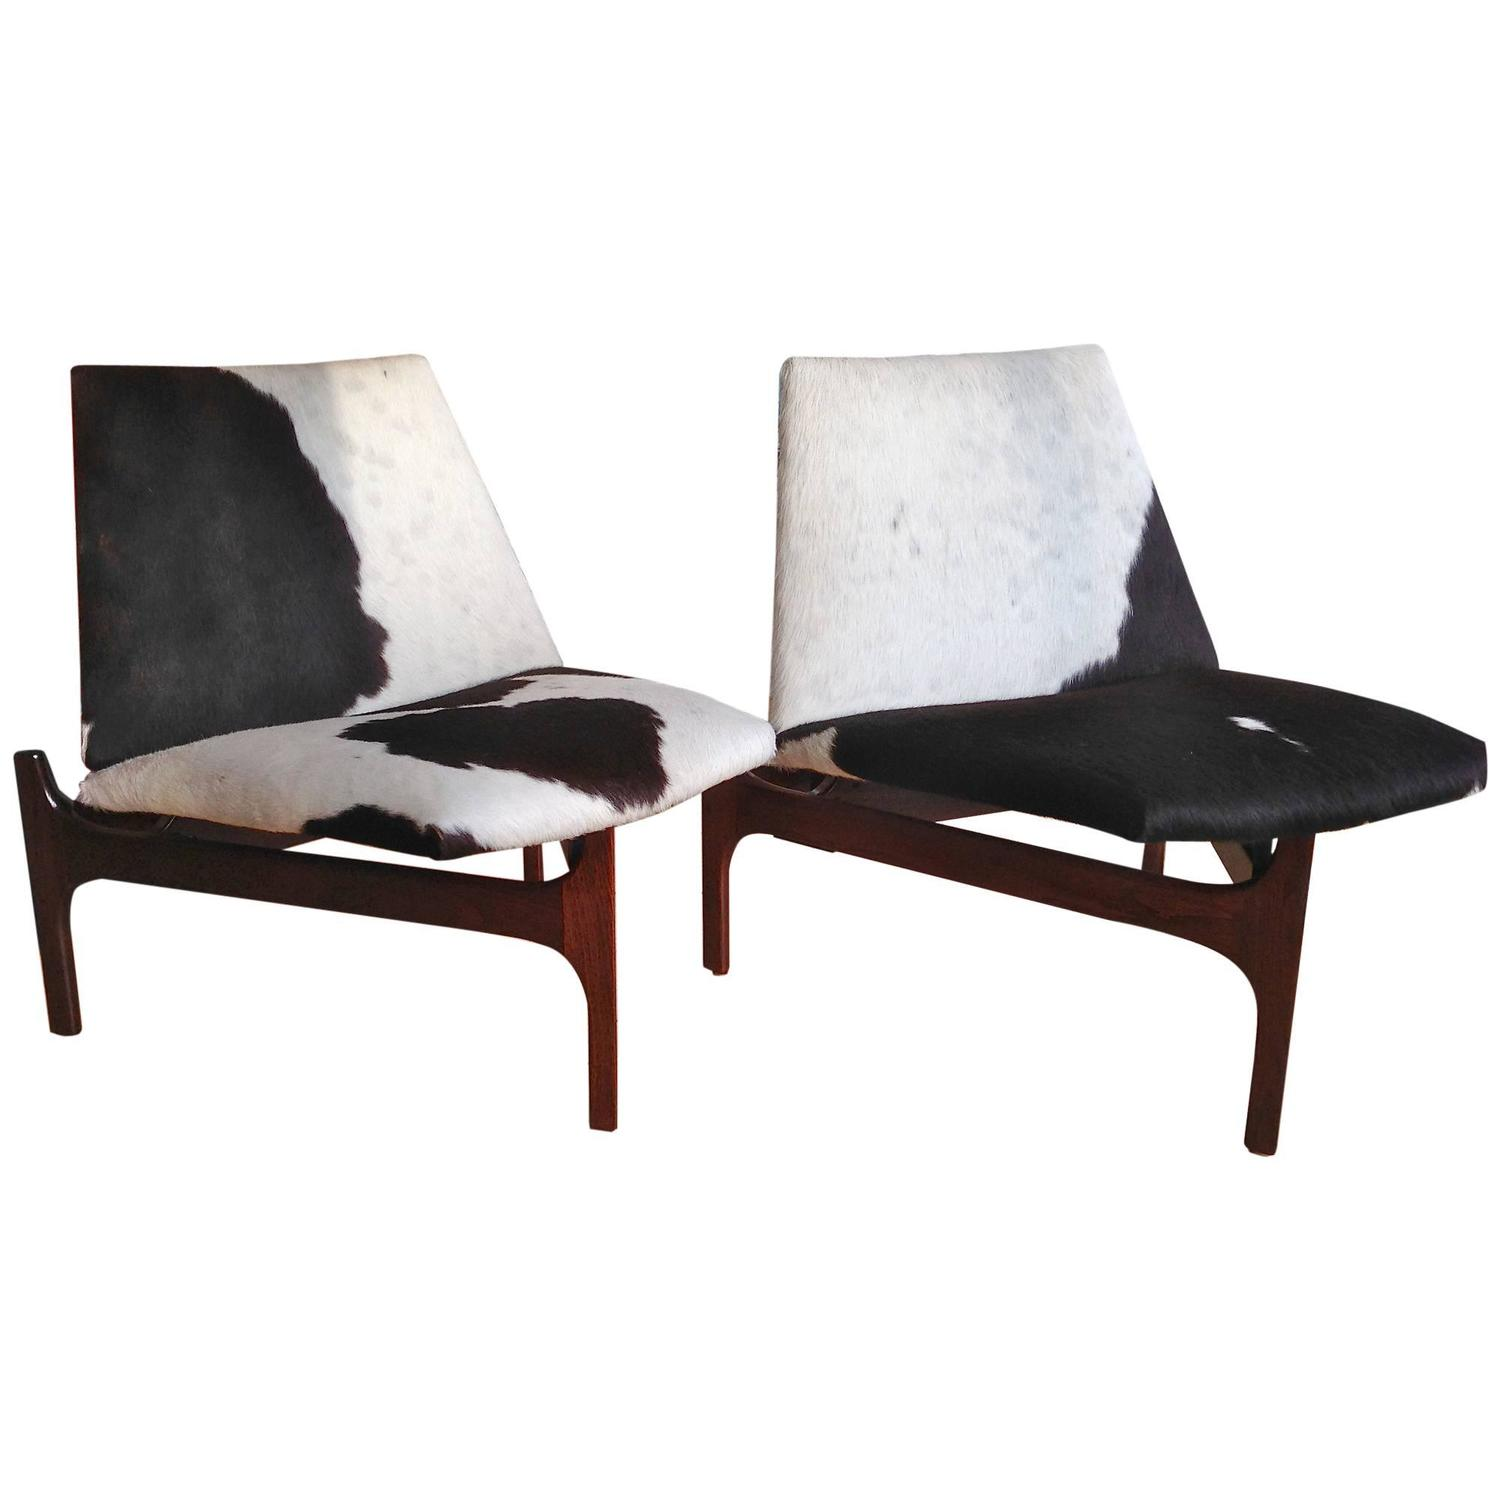 Sculptural Low Lounge Chairs With Cowhide Upholstery For